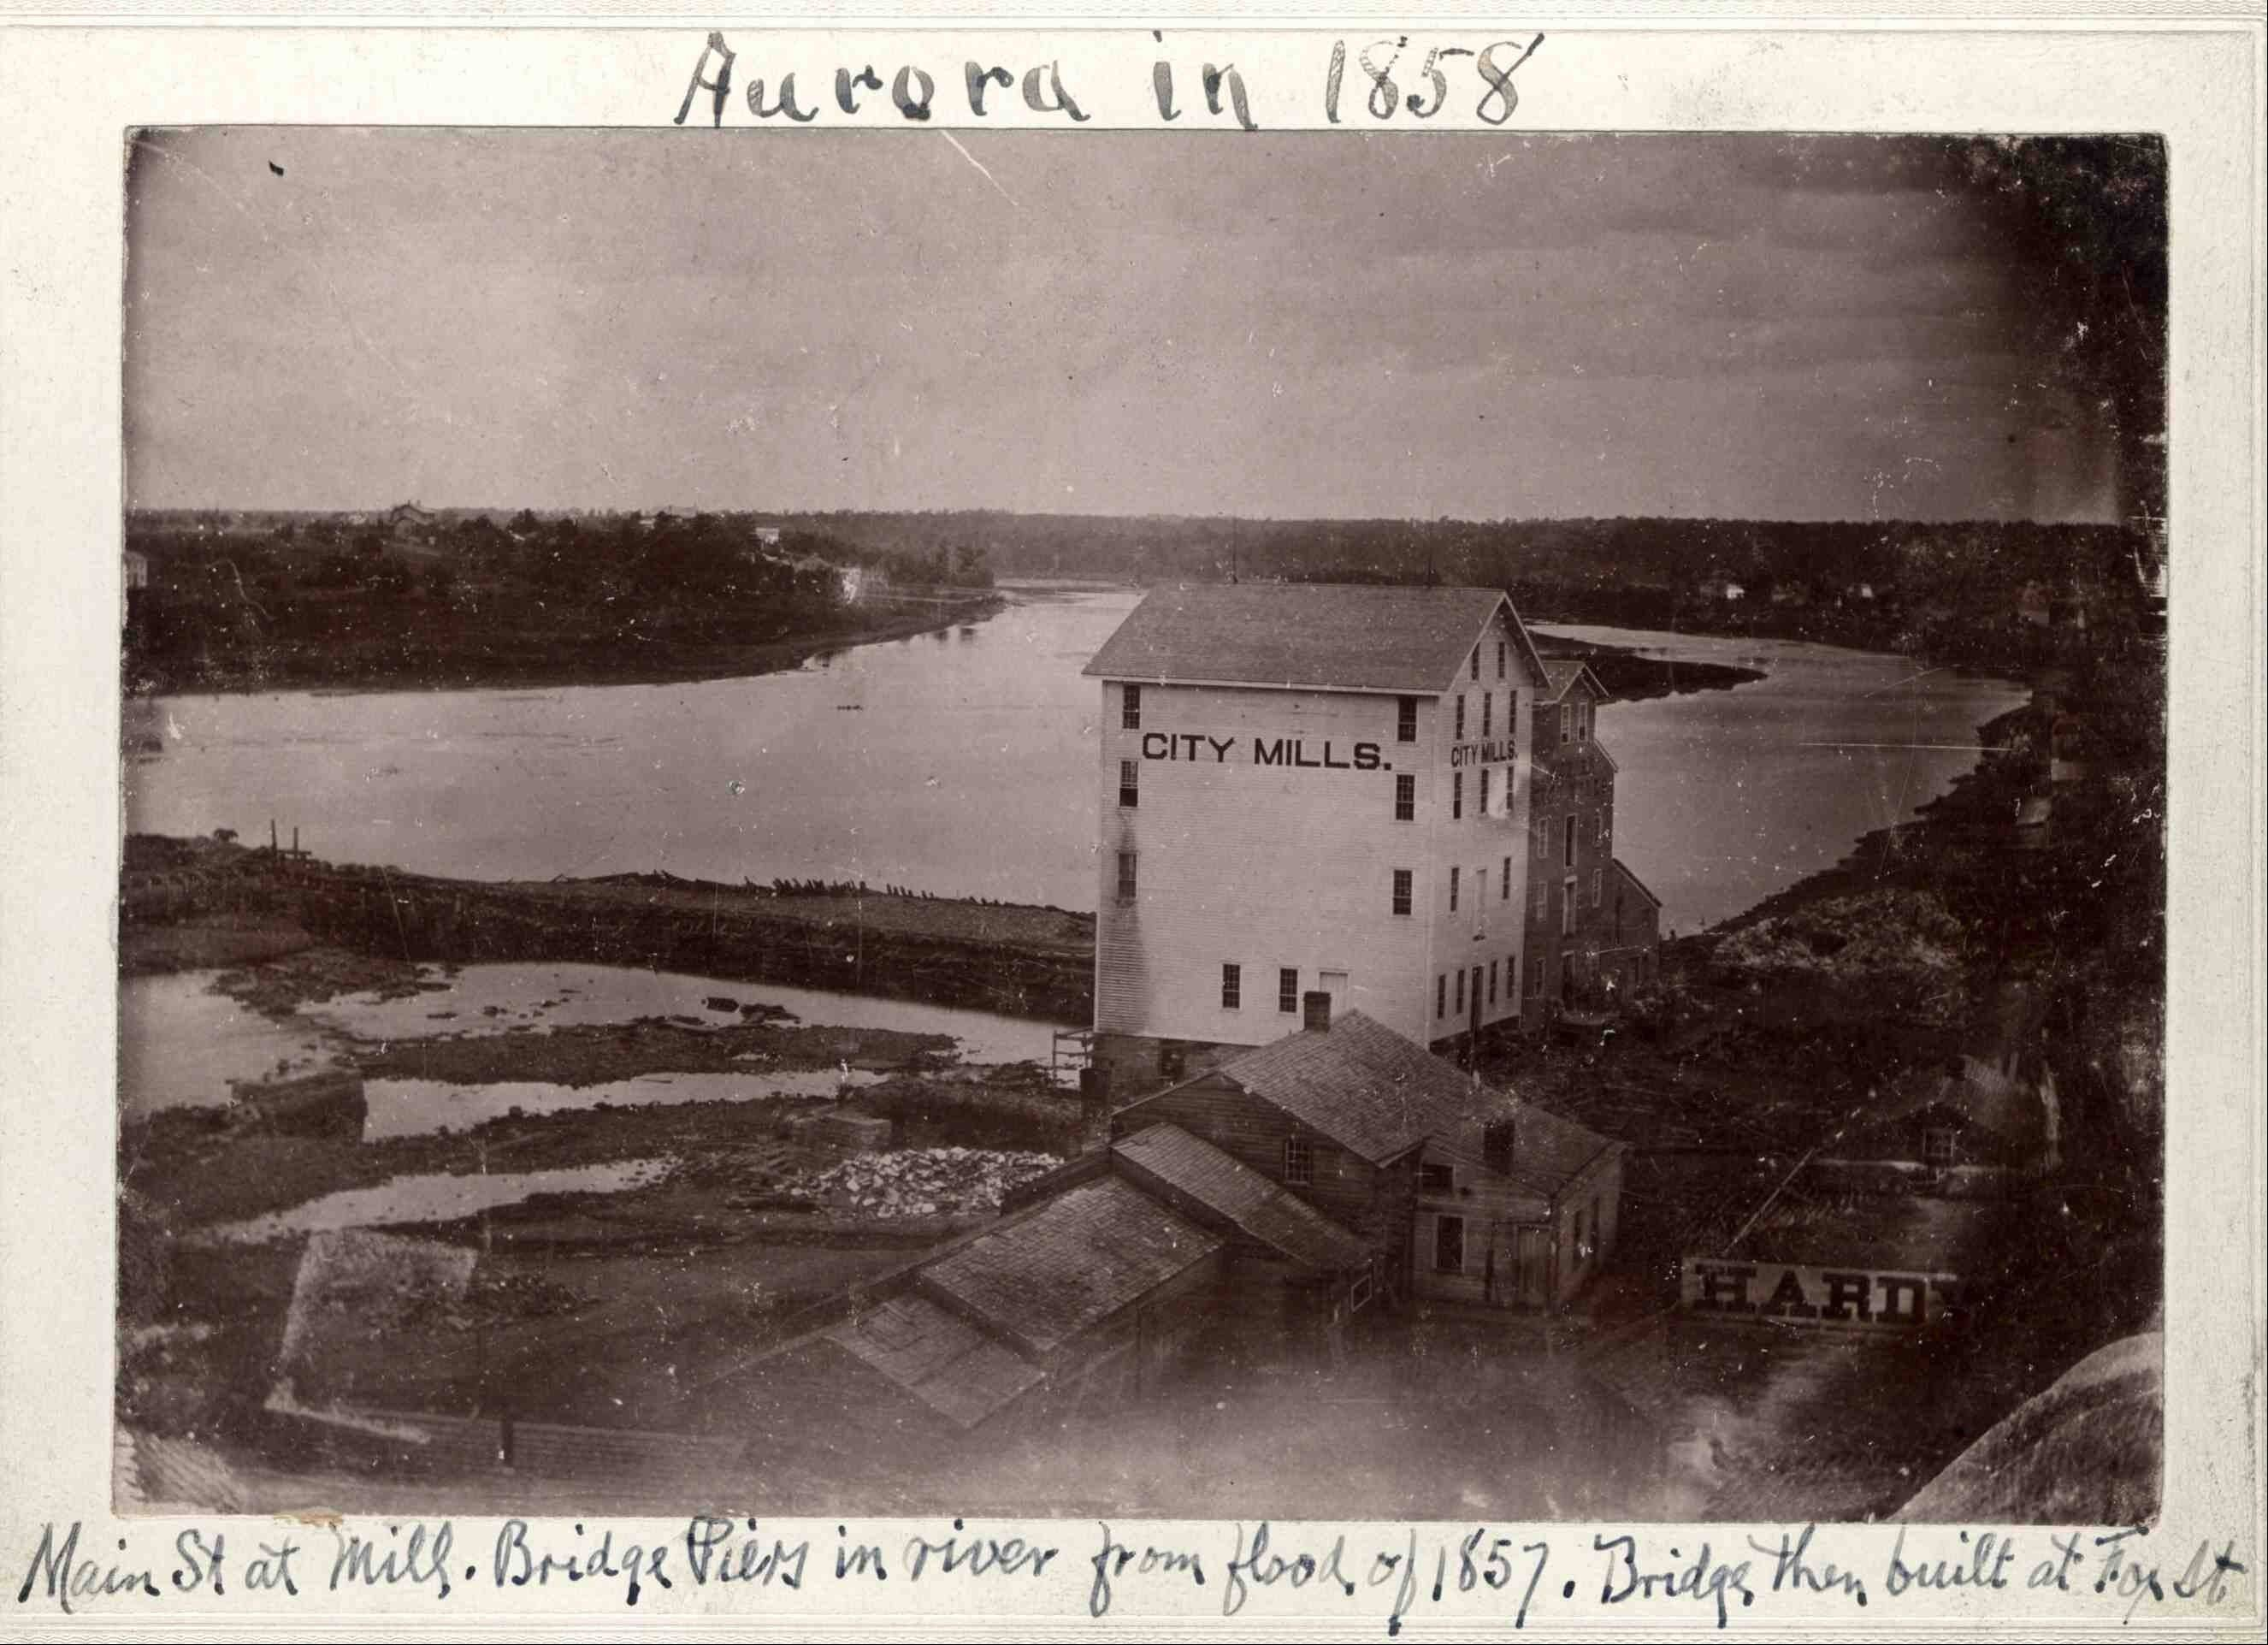 This picture of McCarty's mills was taken in 1858, more than 20 years after their construction. The dark building to the rear was the sawmill, built in 1834-35; the white building in front was the grist mill, built in 1836-37. The buildings were on the east bank of the river, on the north side of what is today East Galena Boulevard.